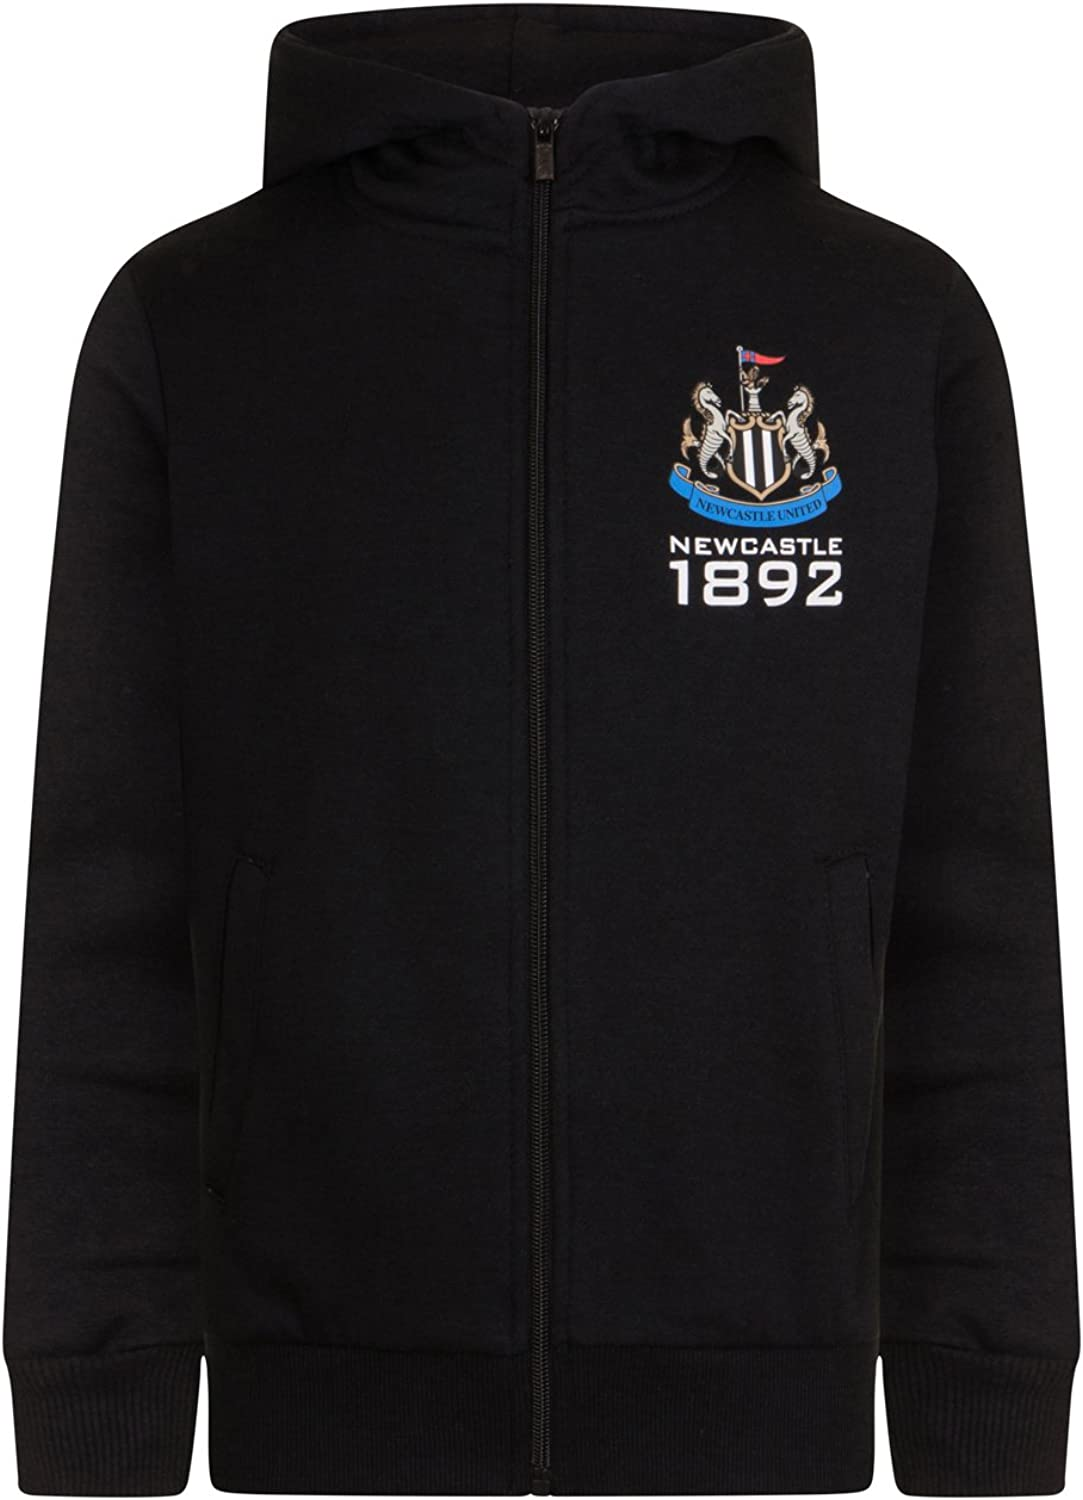 Newcastle United Football Club Official Soccer Gift Boys Fleece Zip Hoody